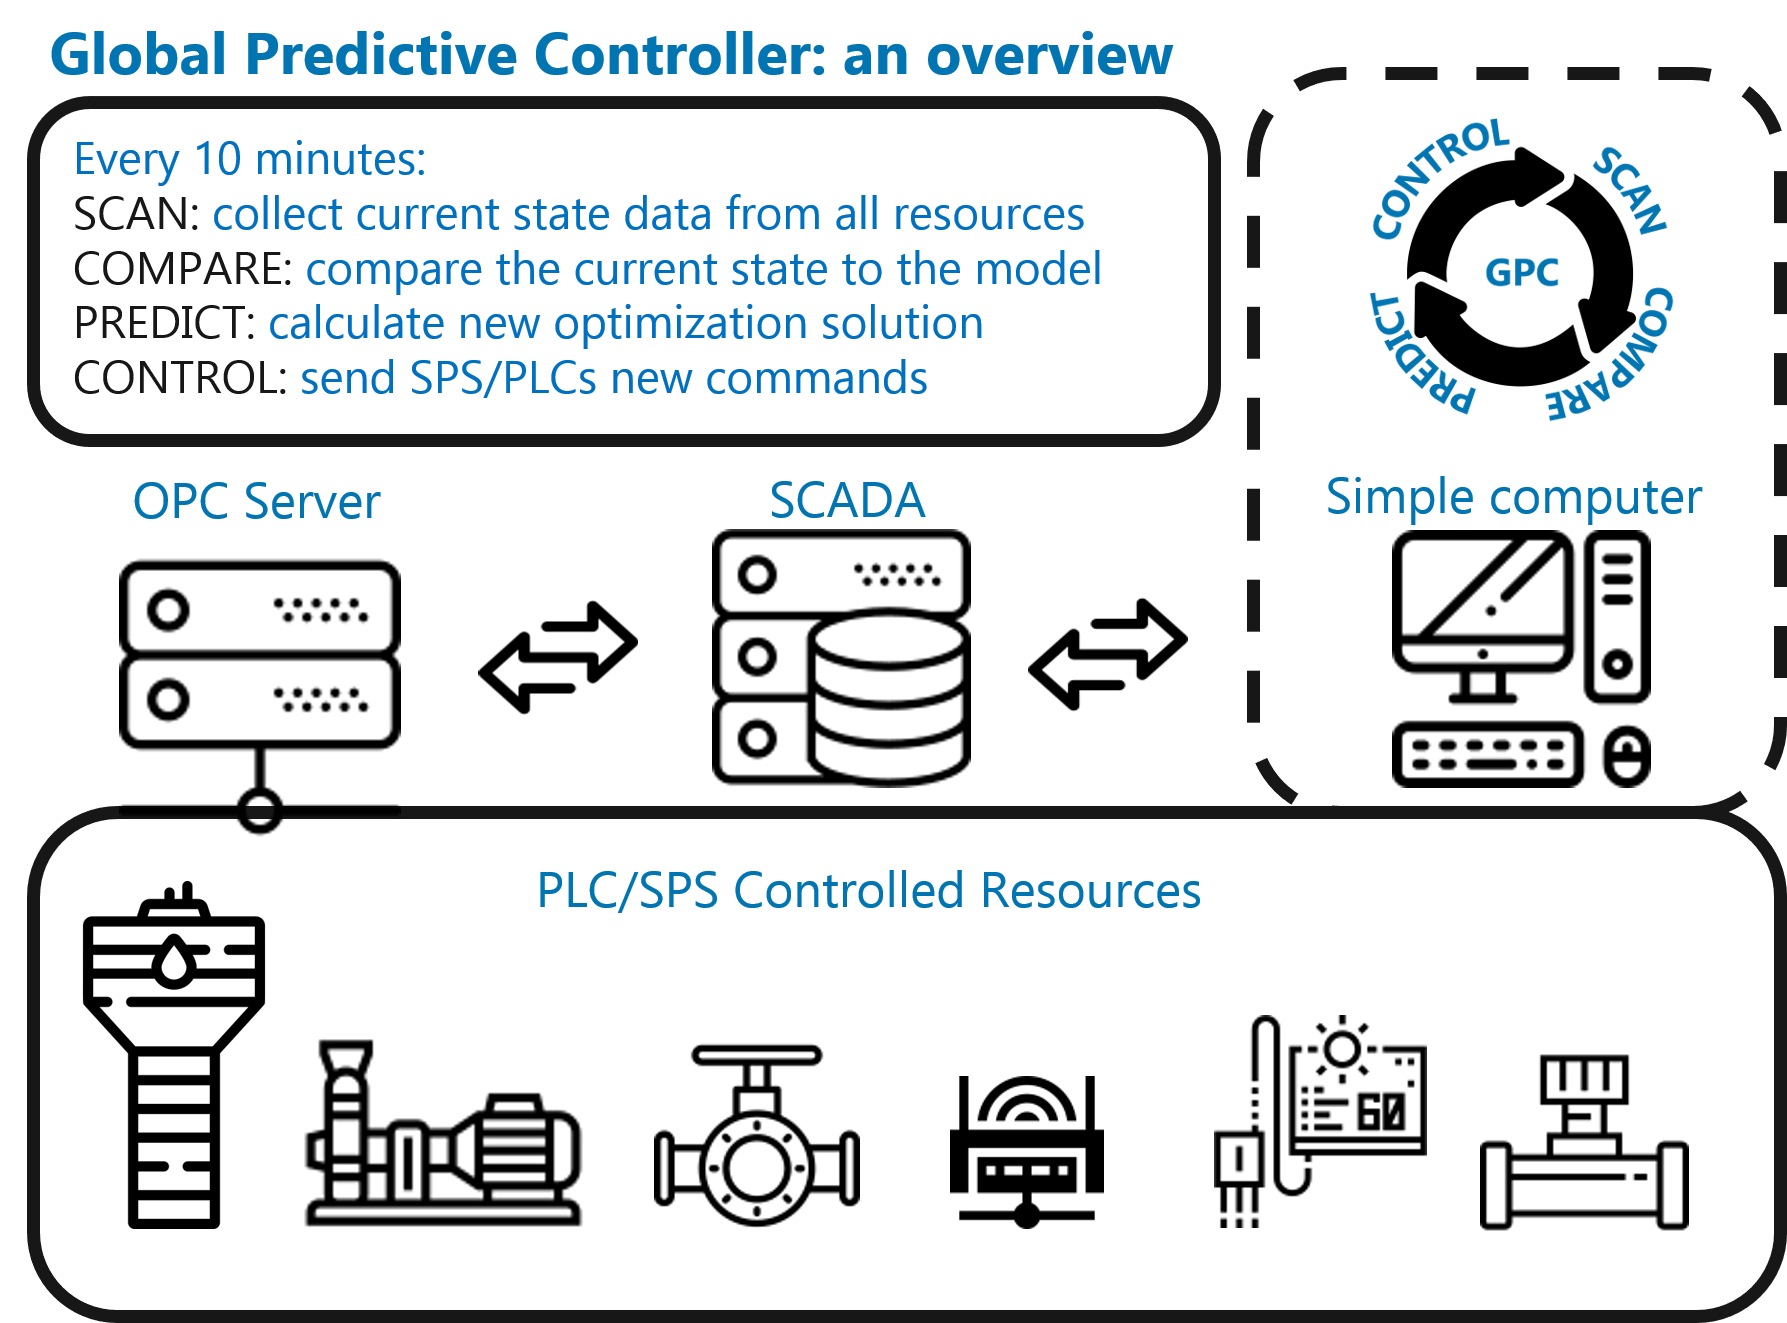 real-time control of PLCs